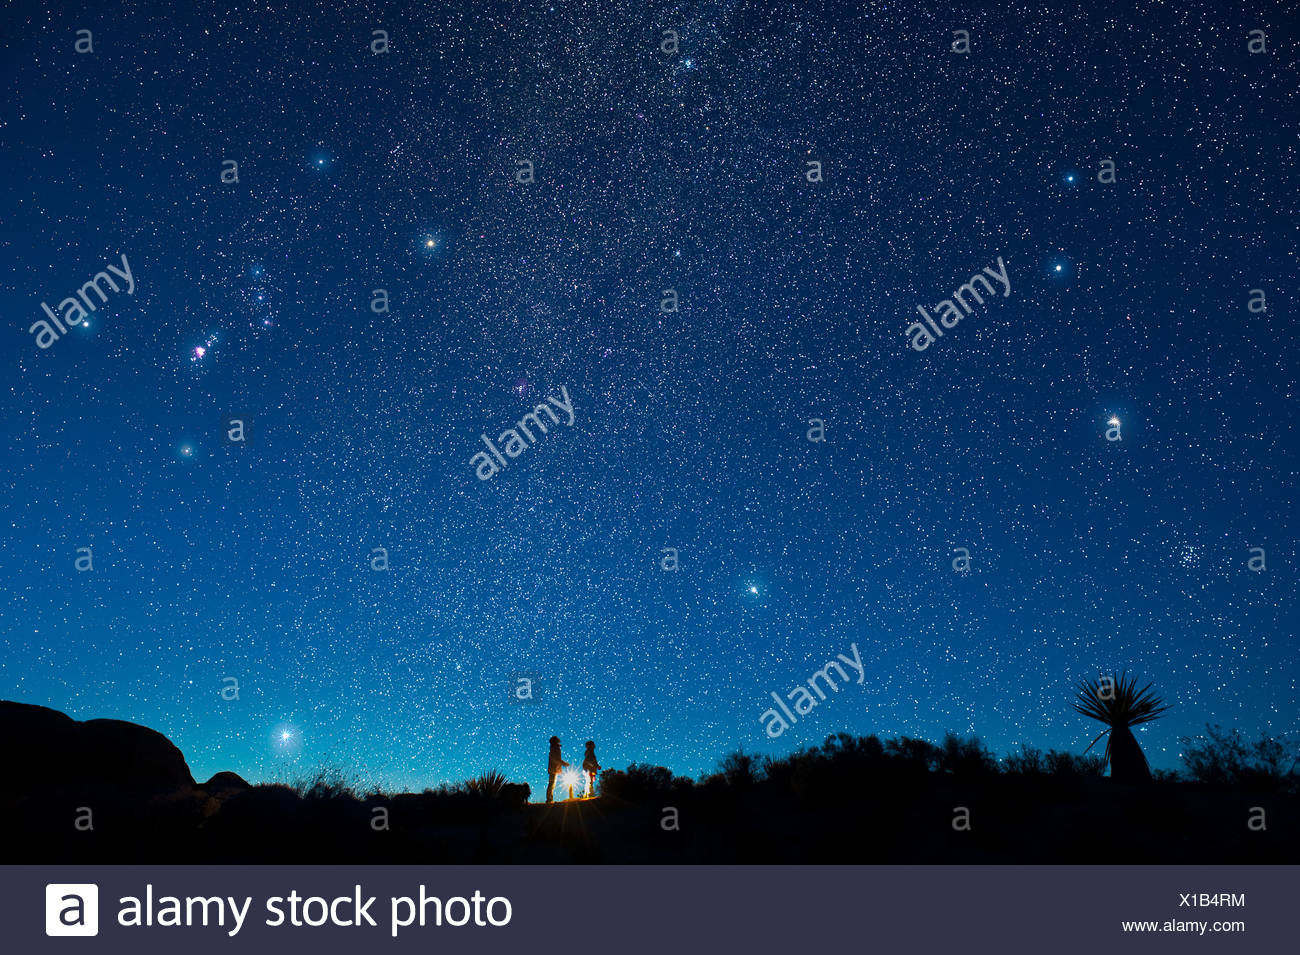 Two children gaze at star filled night sky - Stock Image